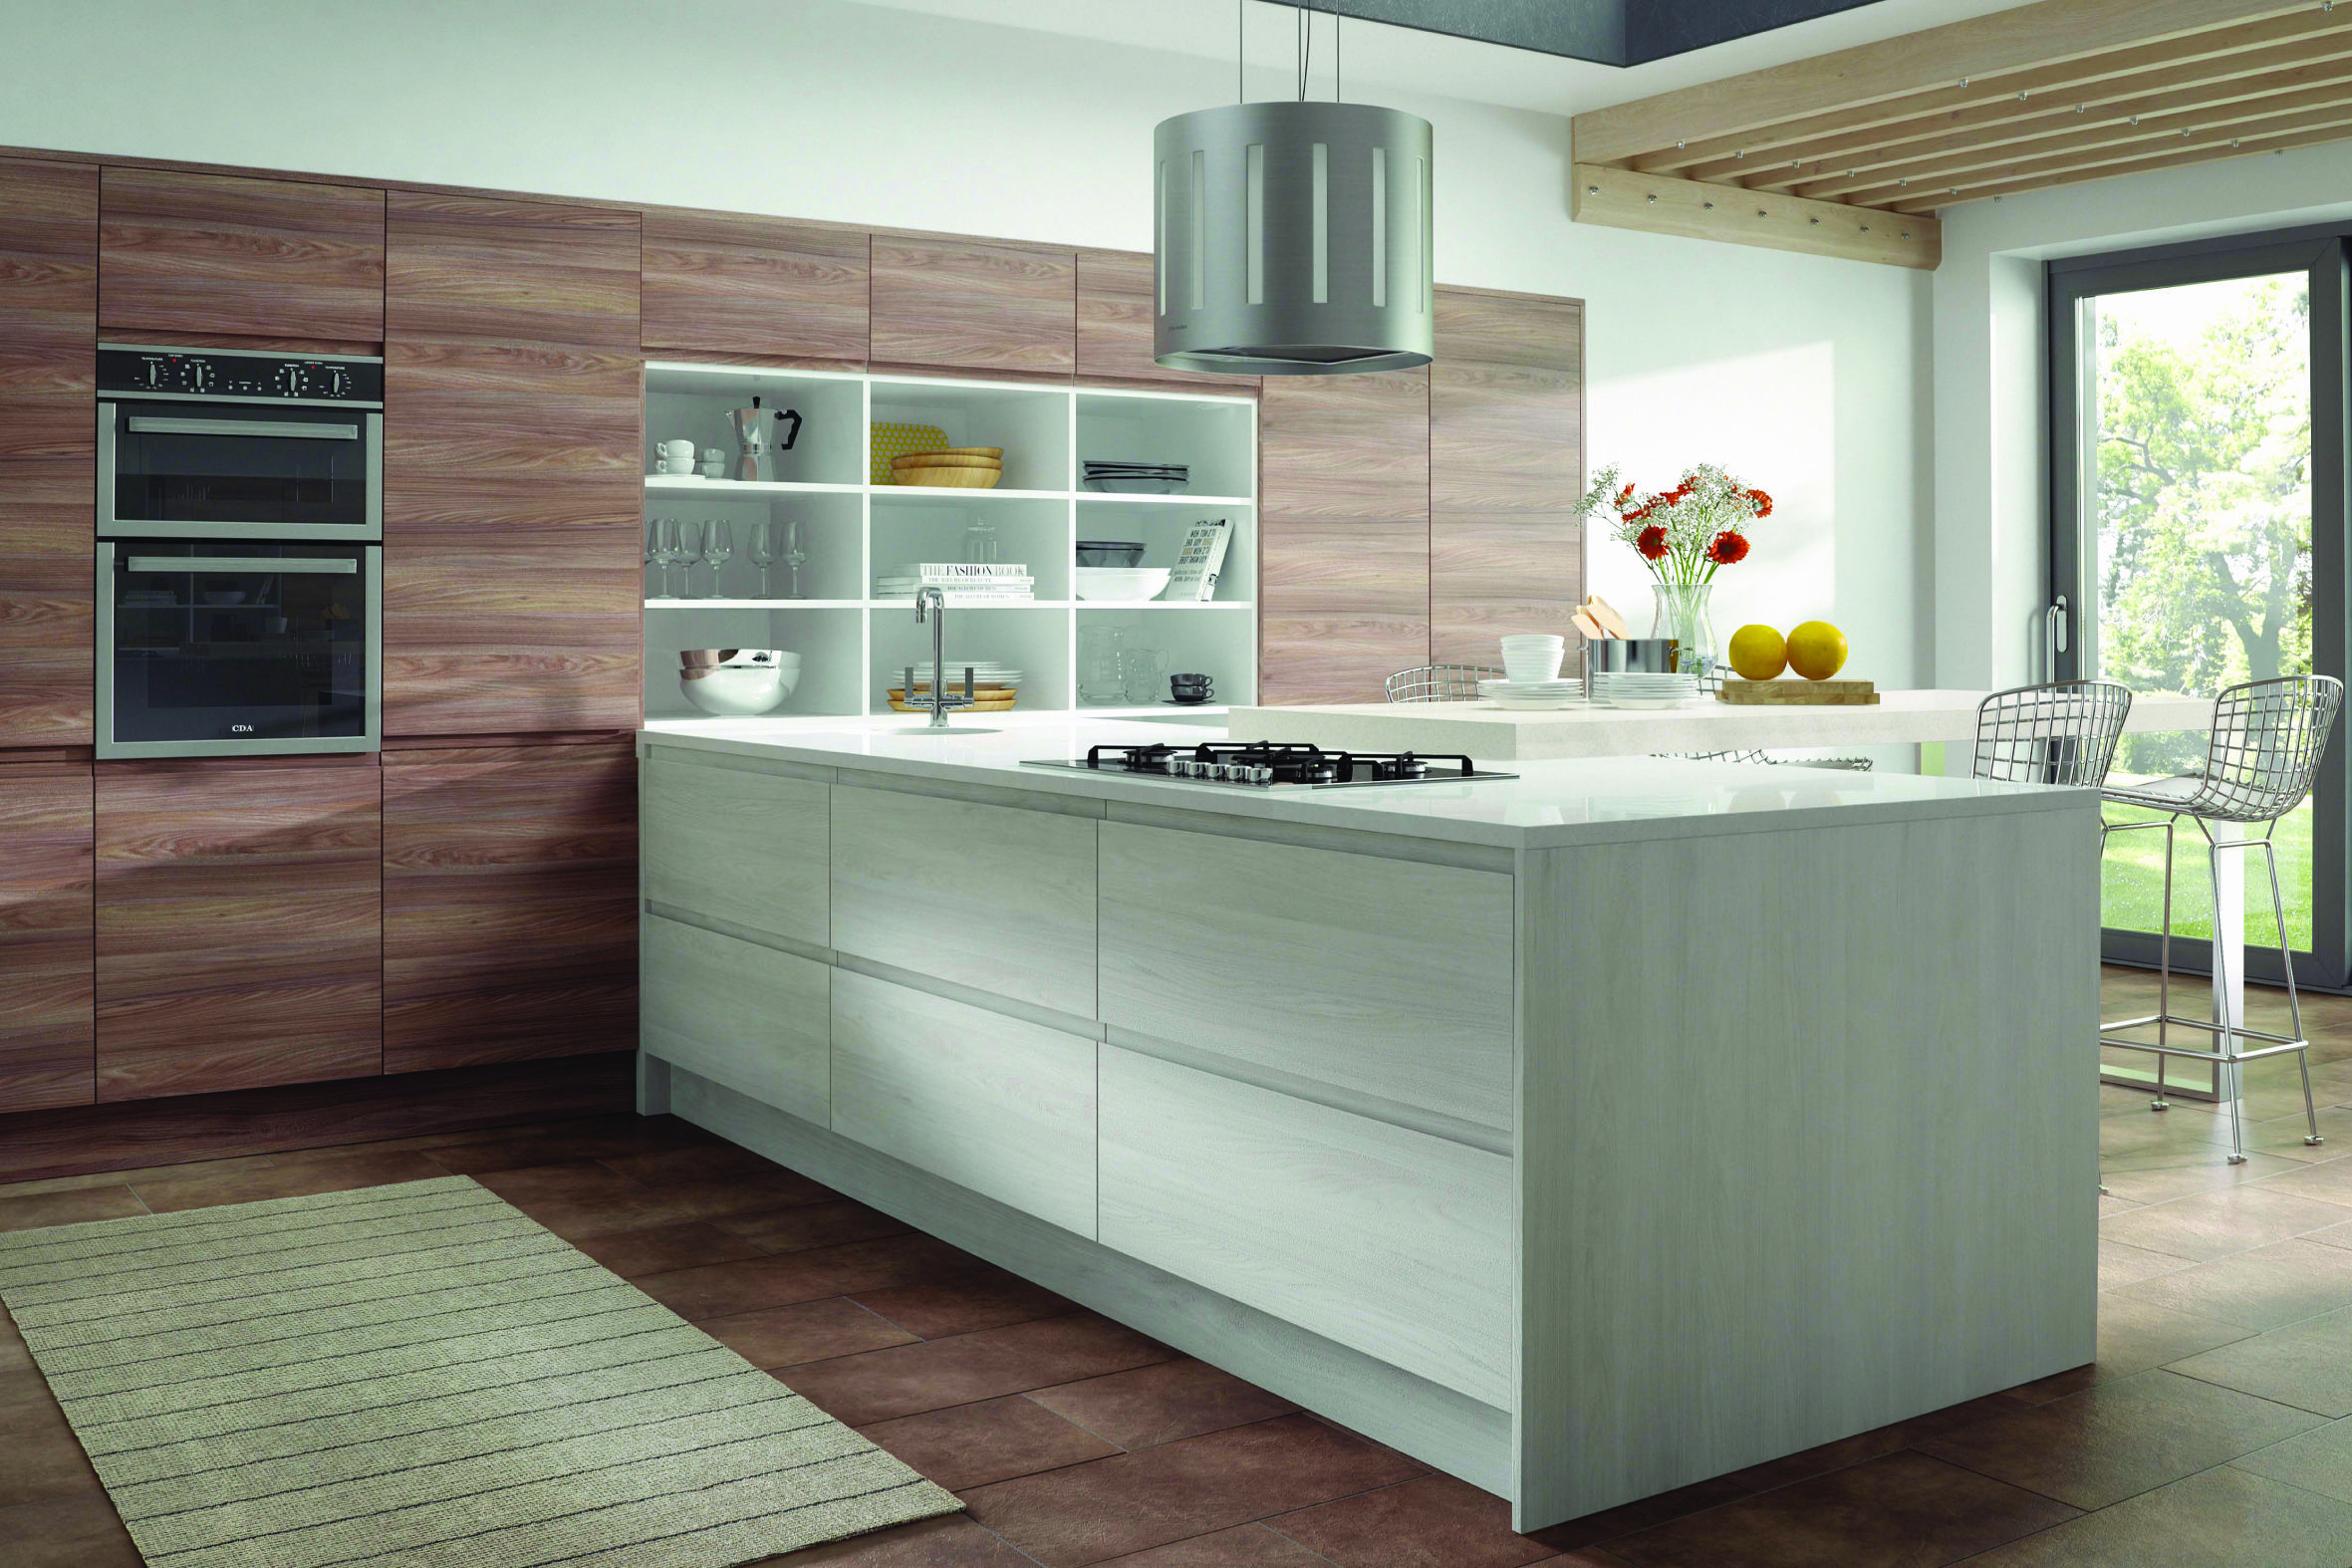 Legno Kitchen Doors From #Avanti   Stunning Coral White Decor With J Pull  Handles For